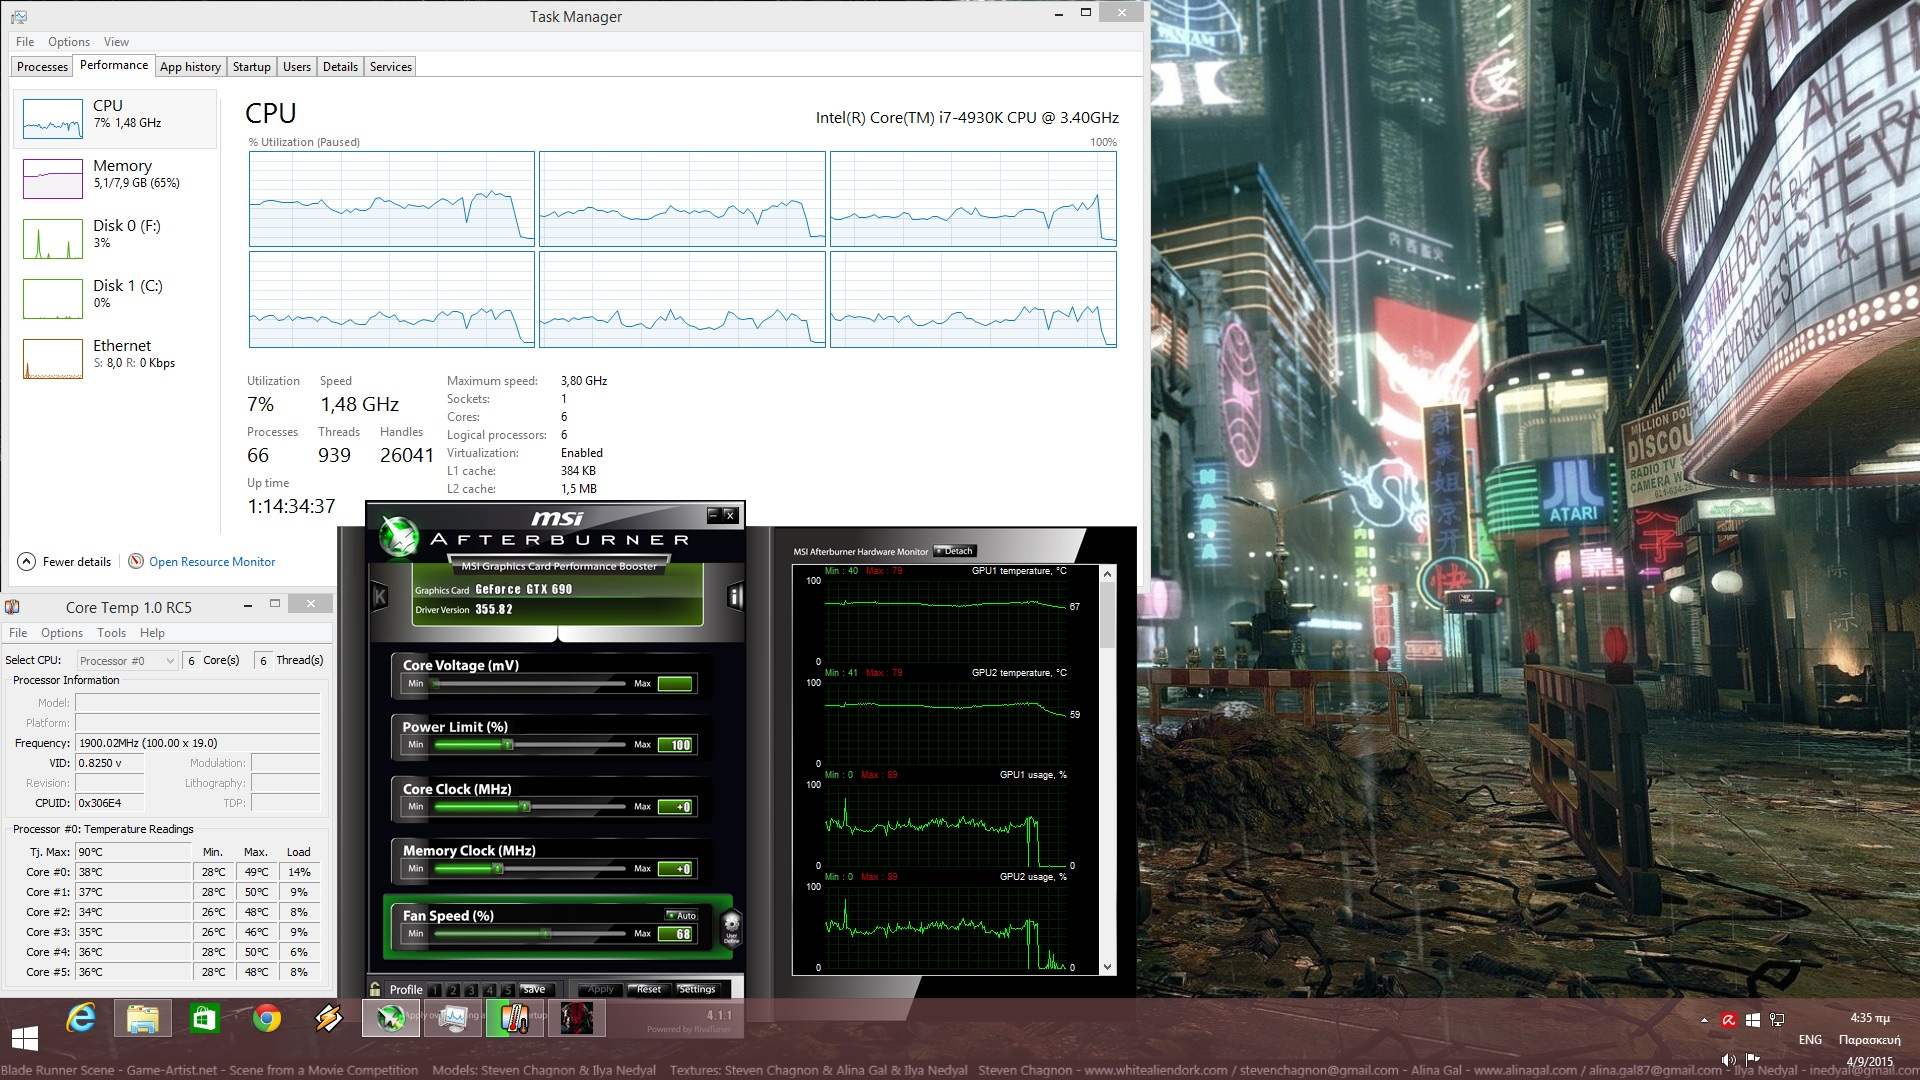 Metal Gear Solid V CPU Performance